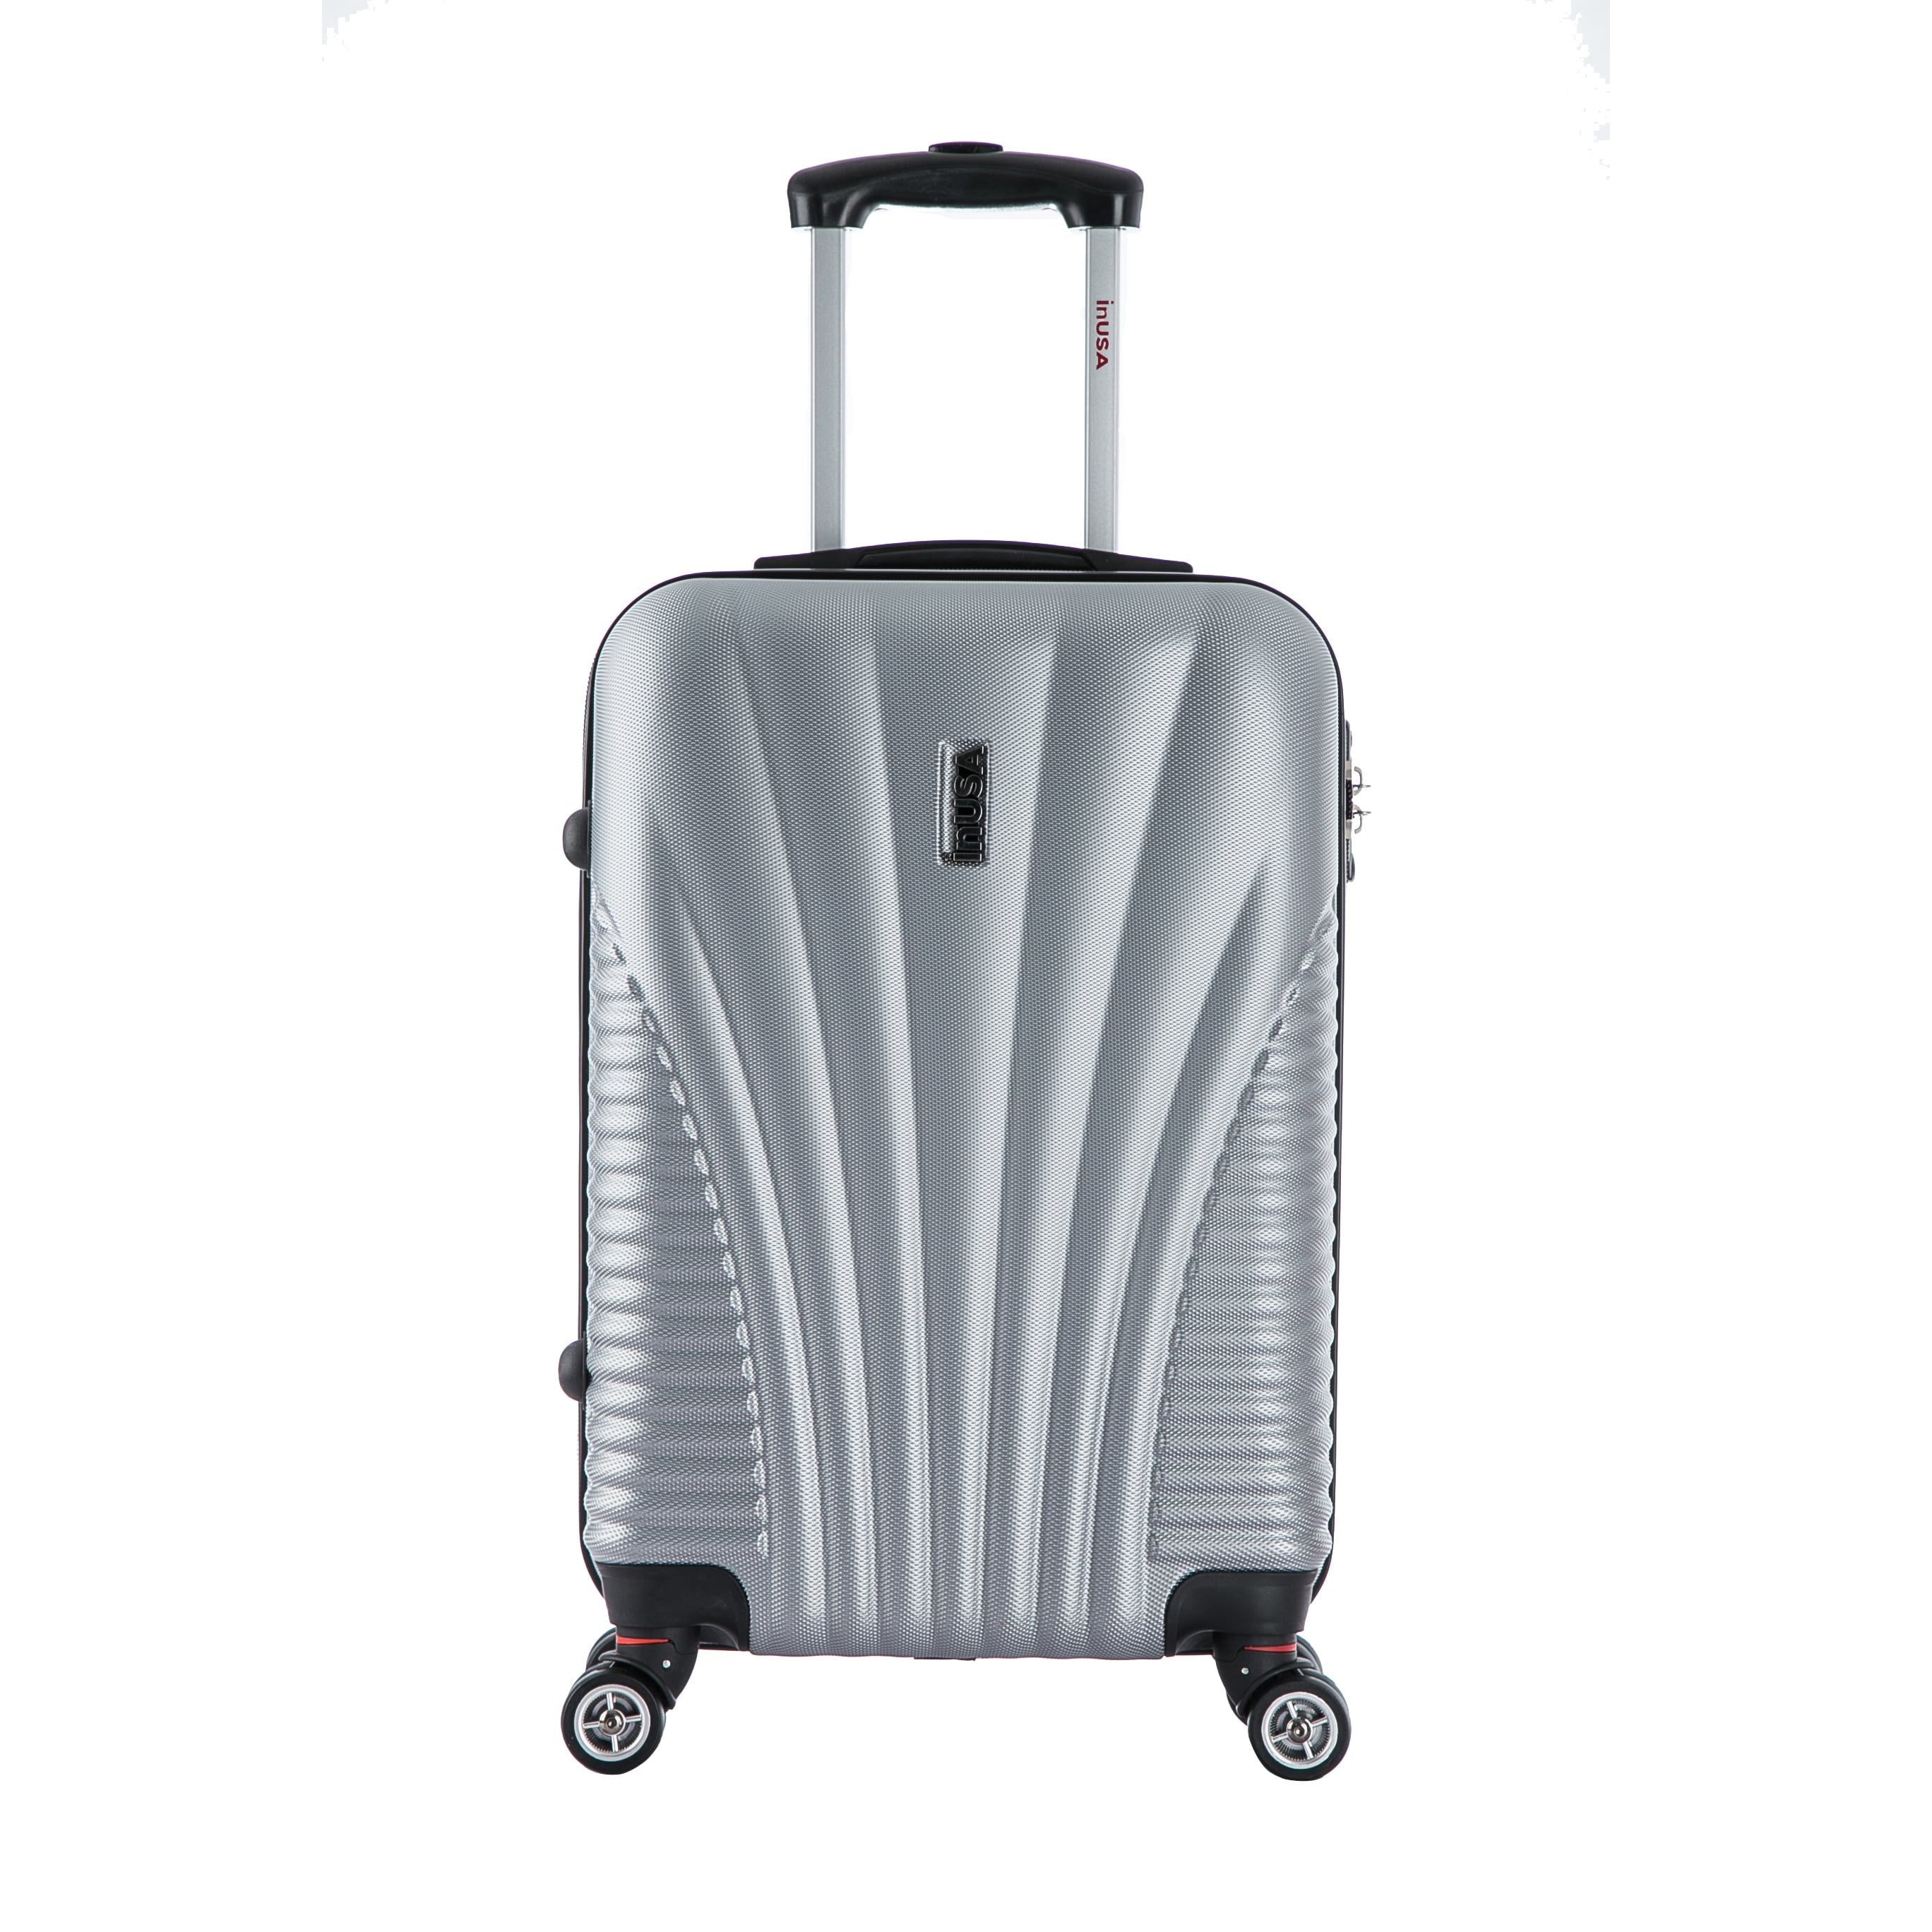 deeefe92c Shop InUSA Chicago Collection 21-inch Carry-on Lightweight Hardside Spinner  Suitcase - Free Shipping Today - Overstock - 11468776